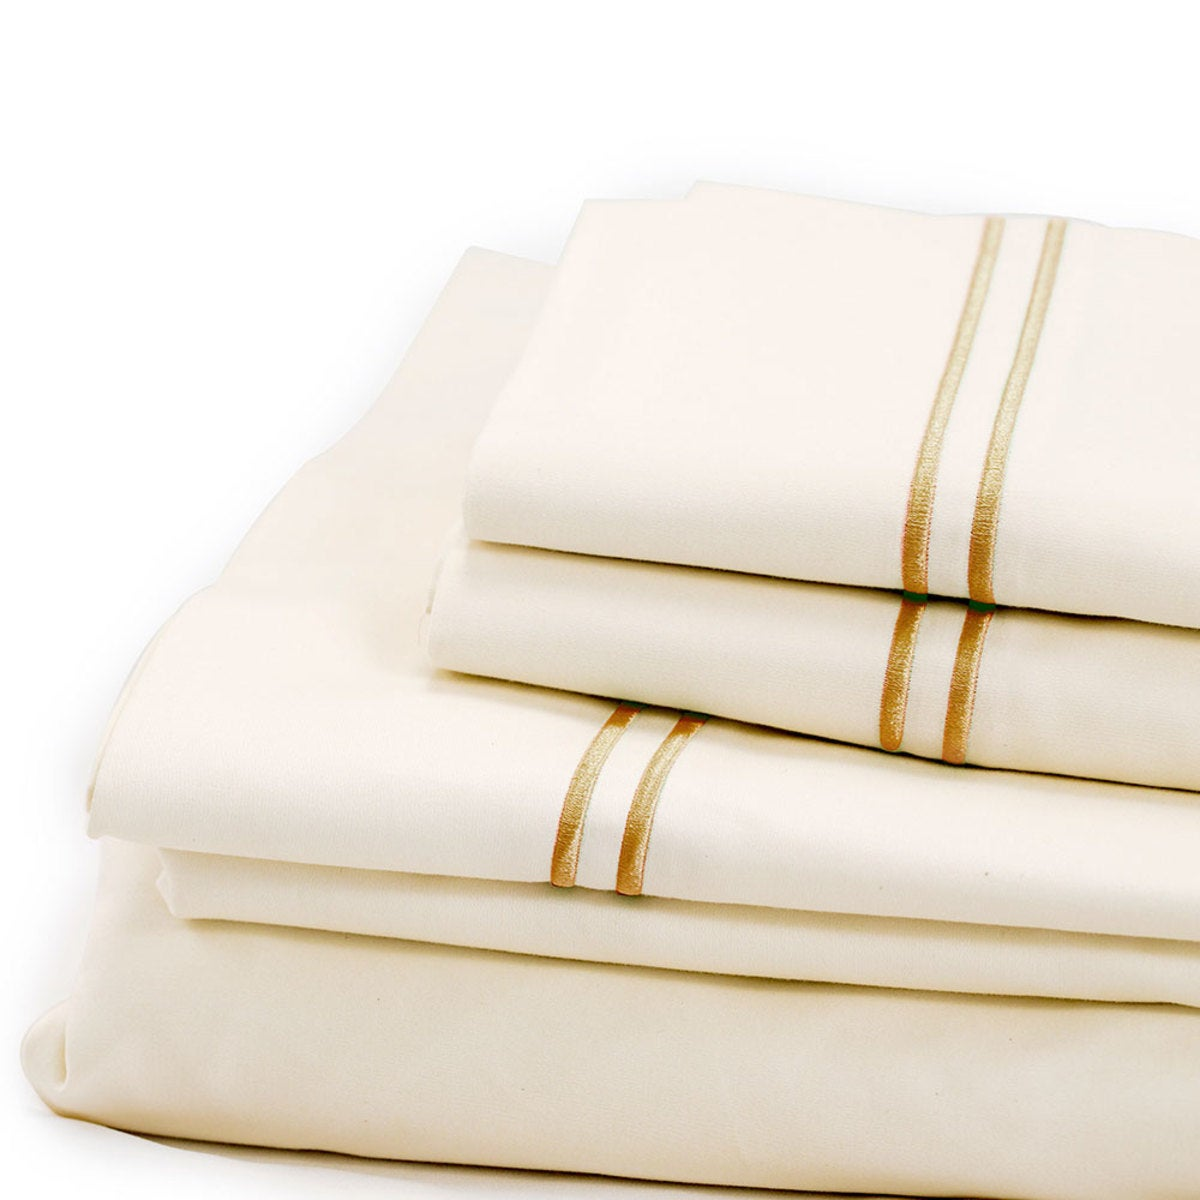 500 Thread Count Sateen Satin Stitch King Sheet Set - Ivory, Flax